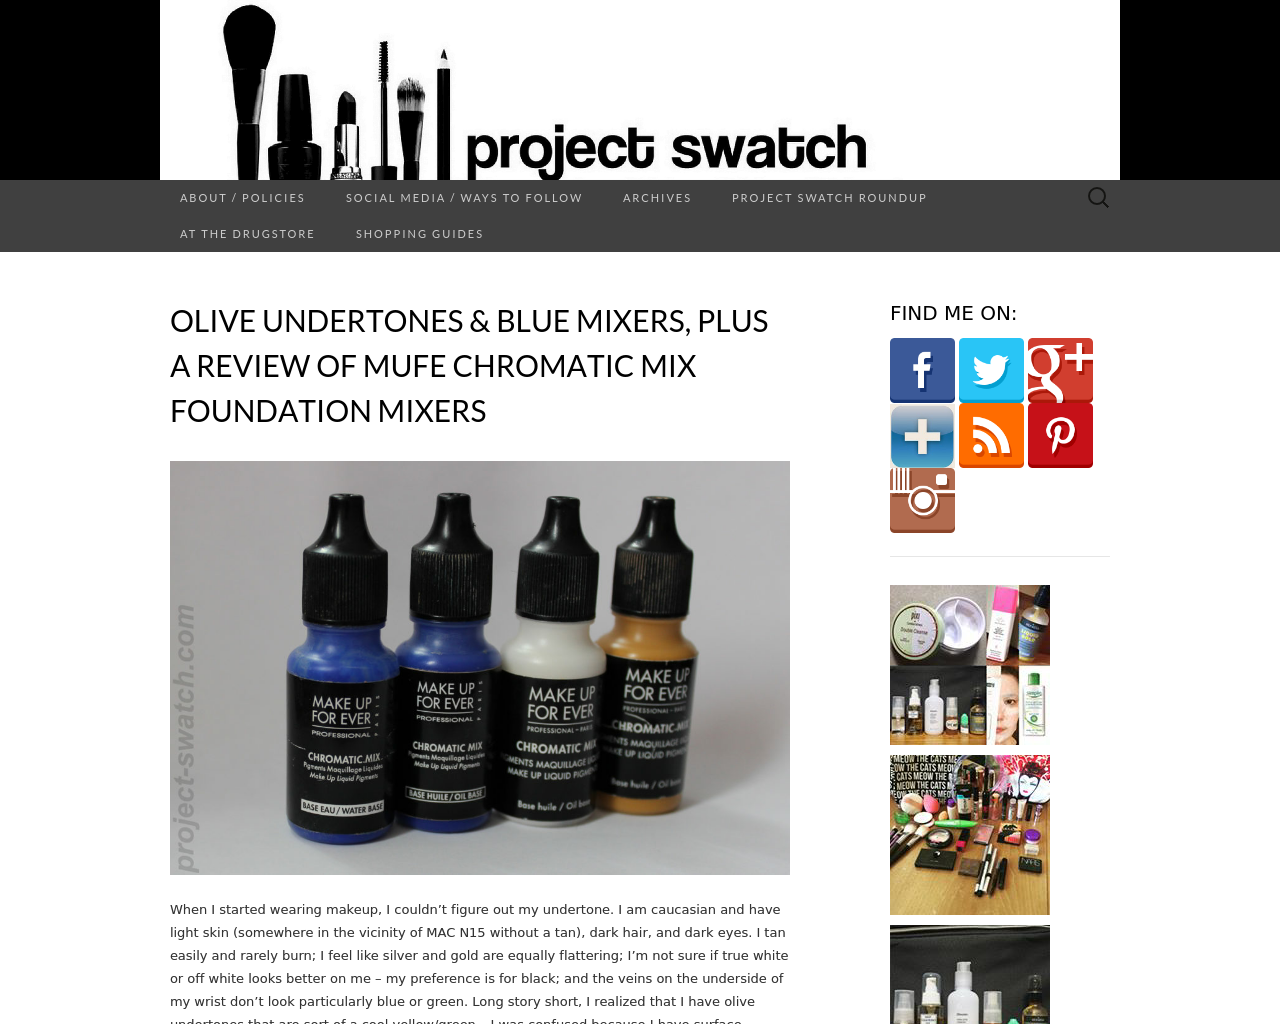 project-swatch-Advertising-Reviews-Pricing